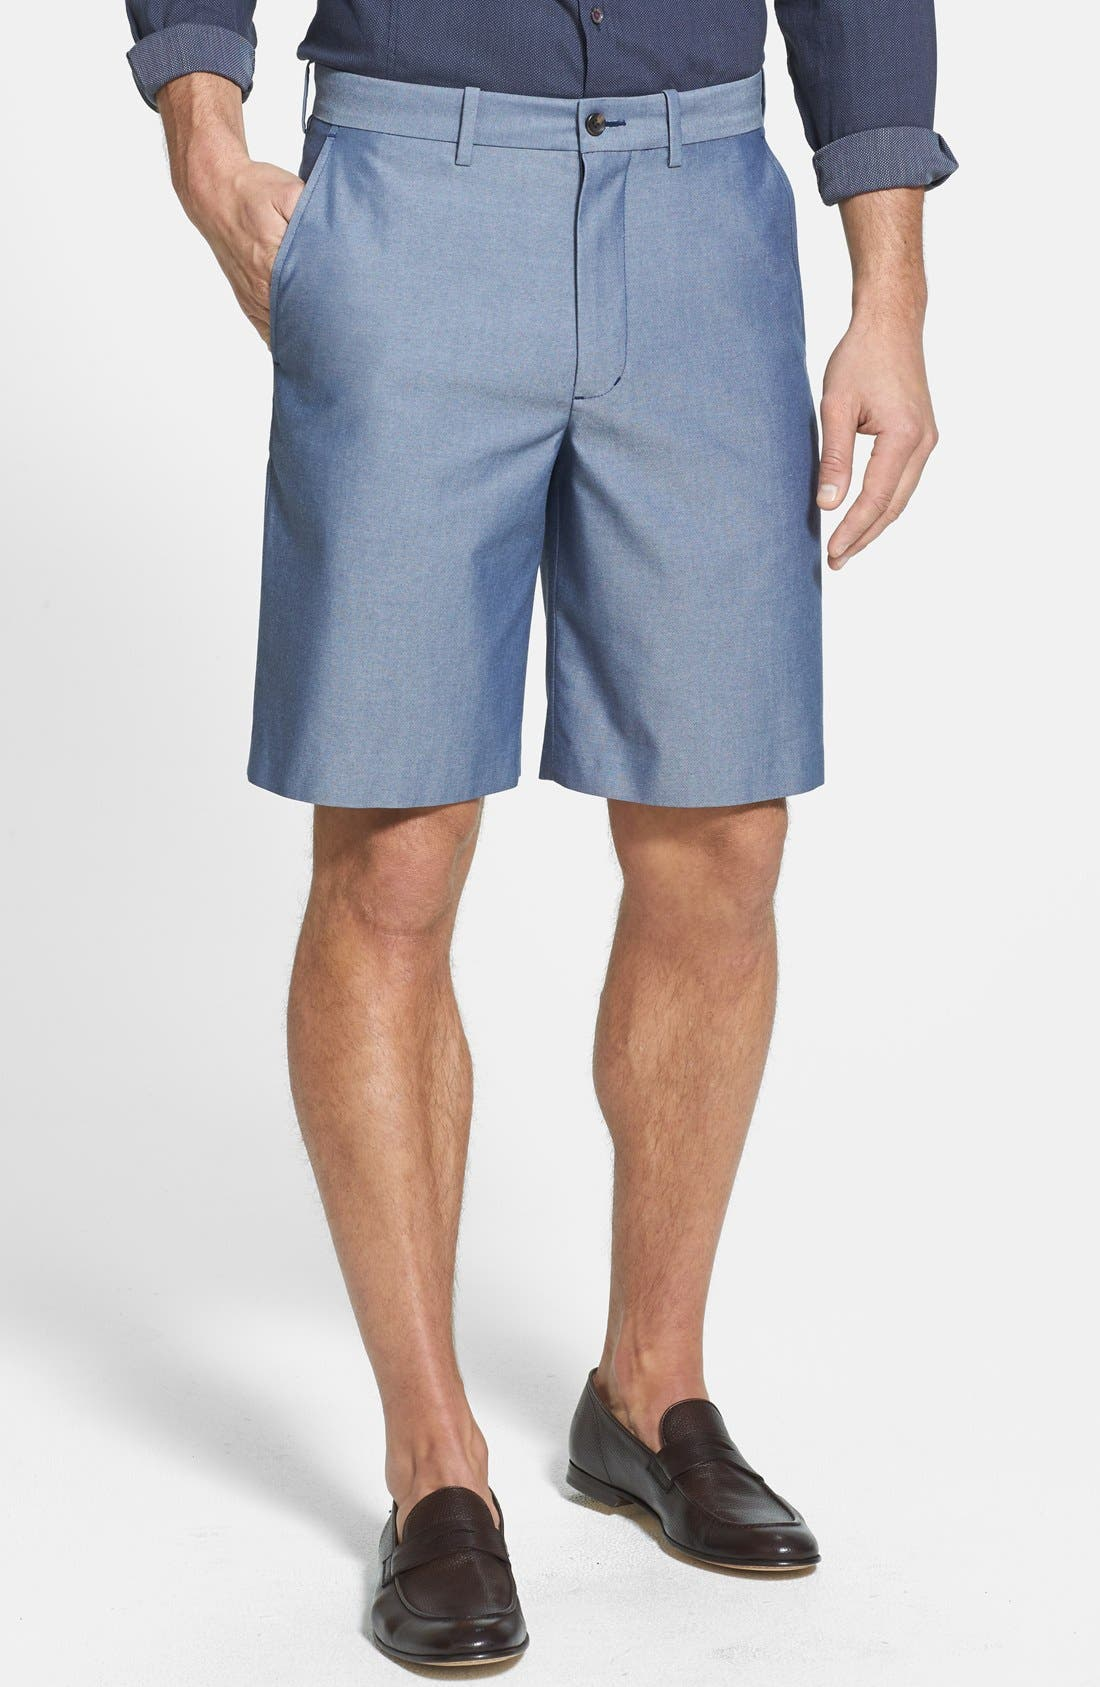 Main Image - John W. Nordstrom® Flat Front Supima® Cotton Shorts